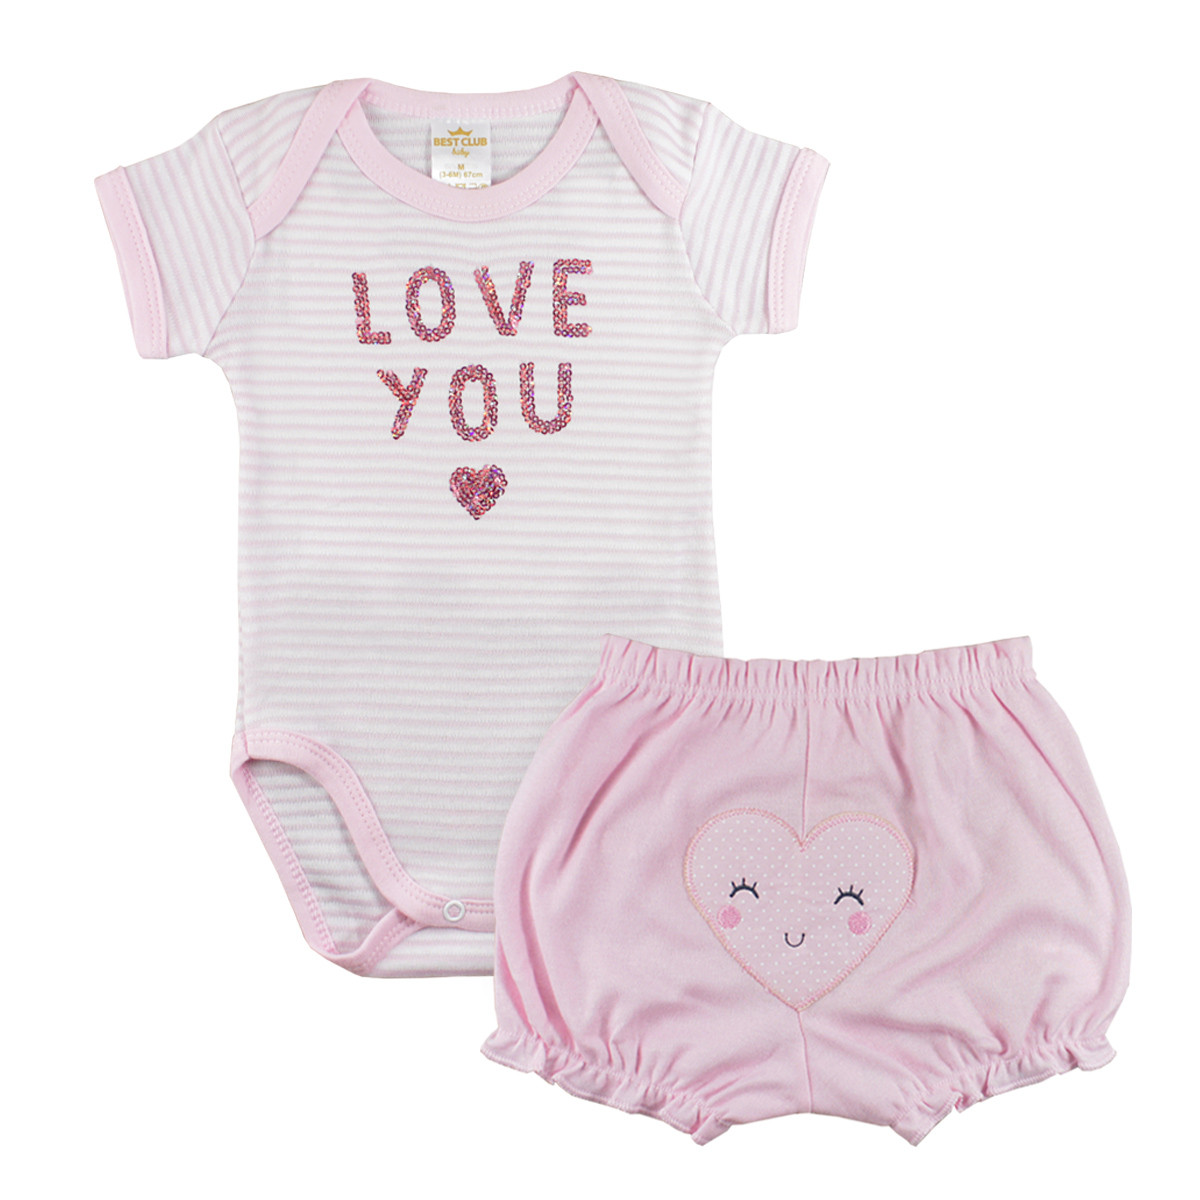 CONJUNTO PARA BEBÊ BODY E SHORTS LOVE YOU ROSA CLARO